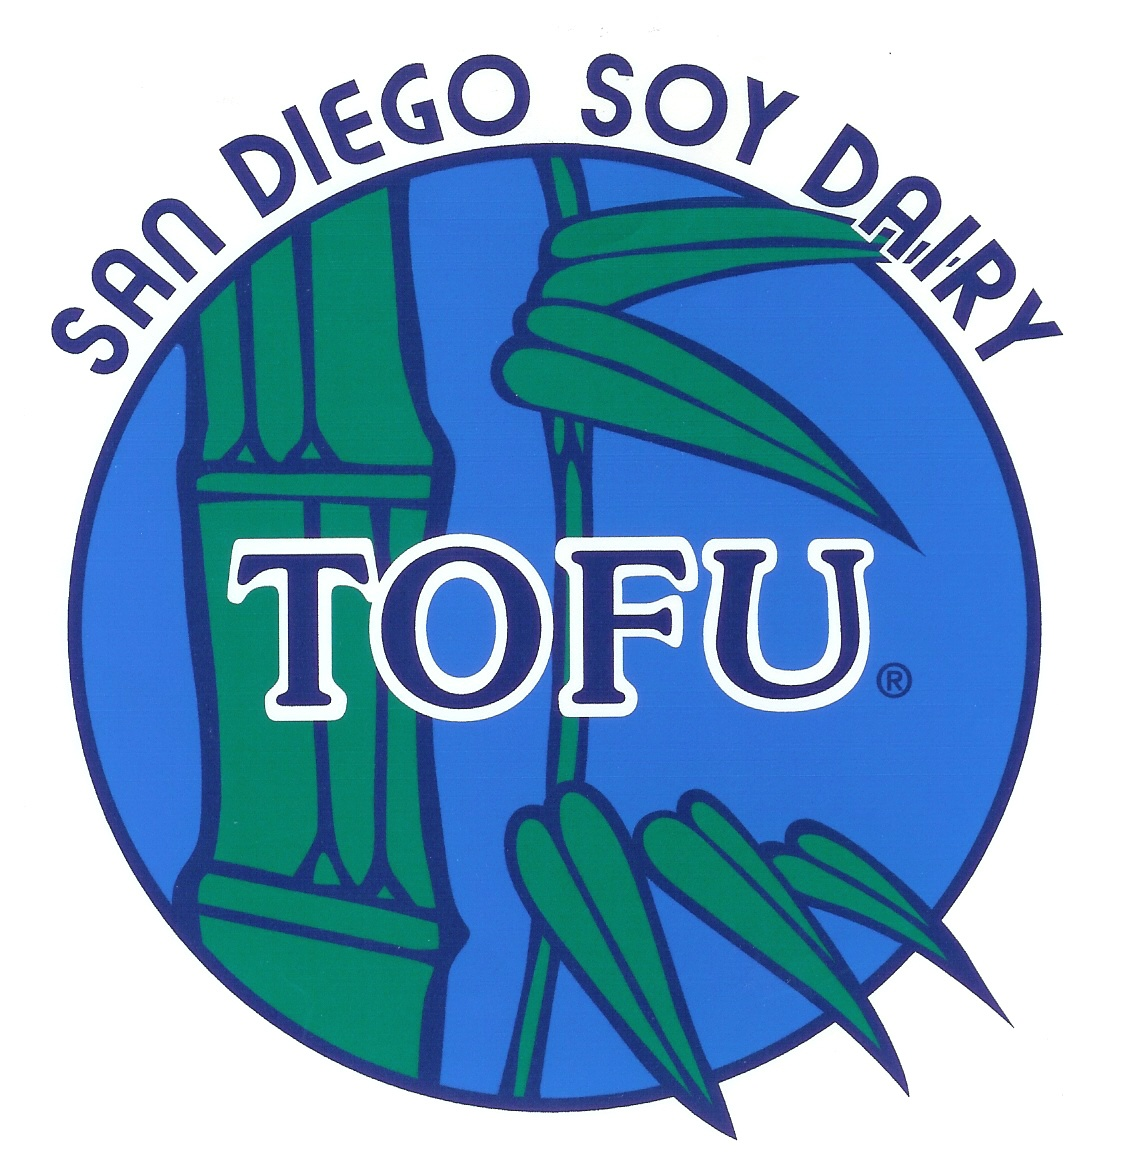 Made-in-California-manufacturer-San-Diego-Soy-logo.jpg